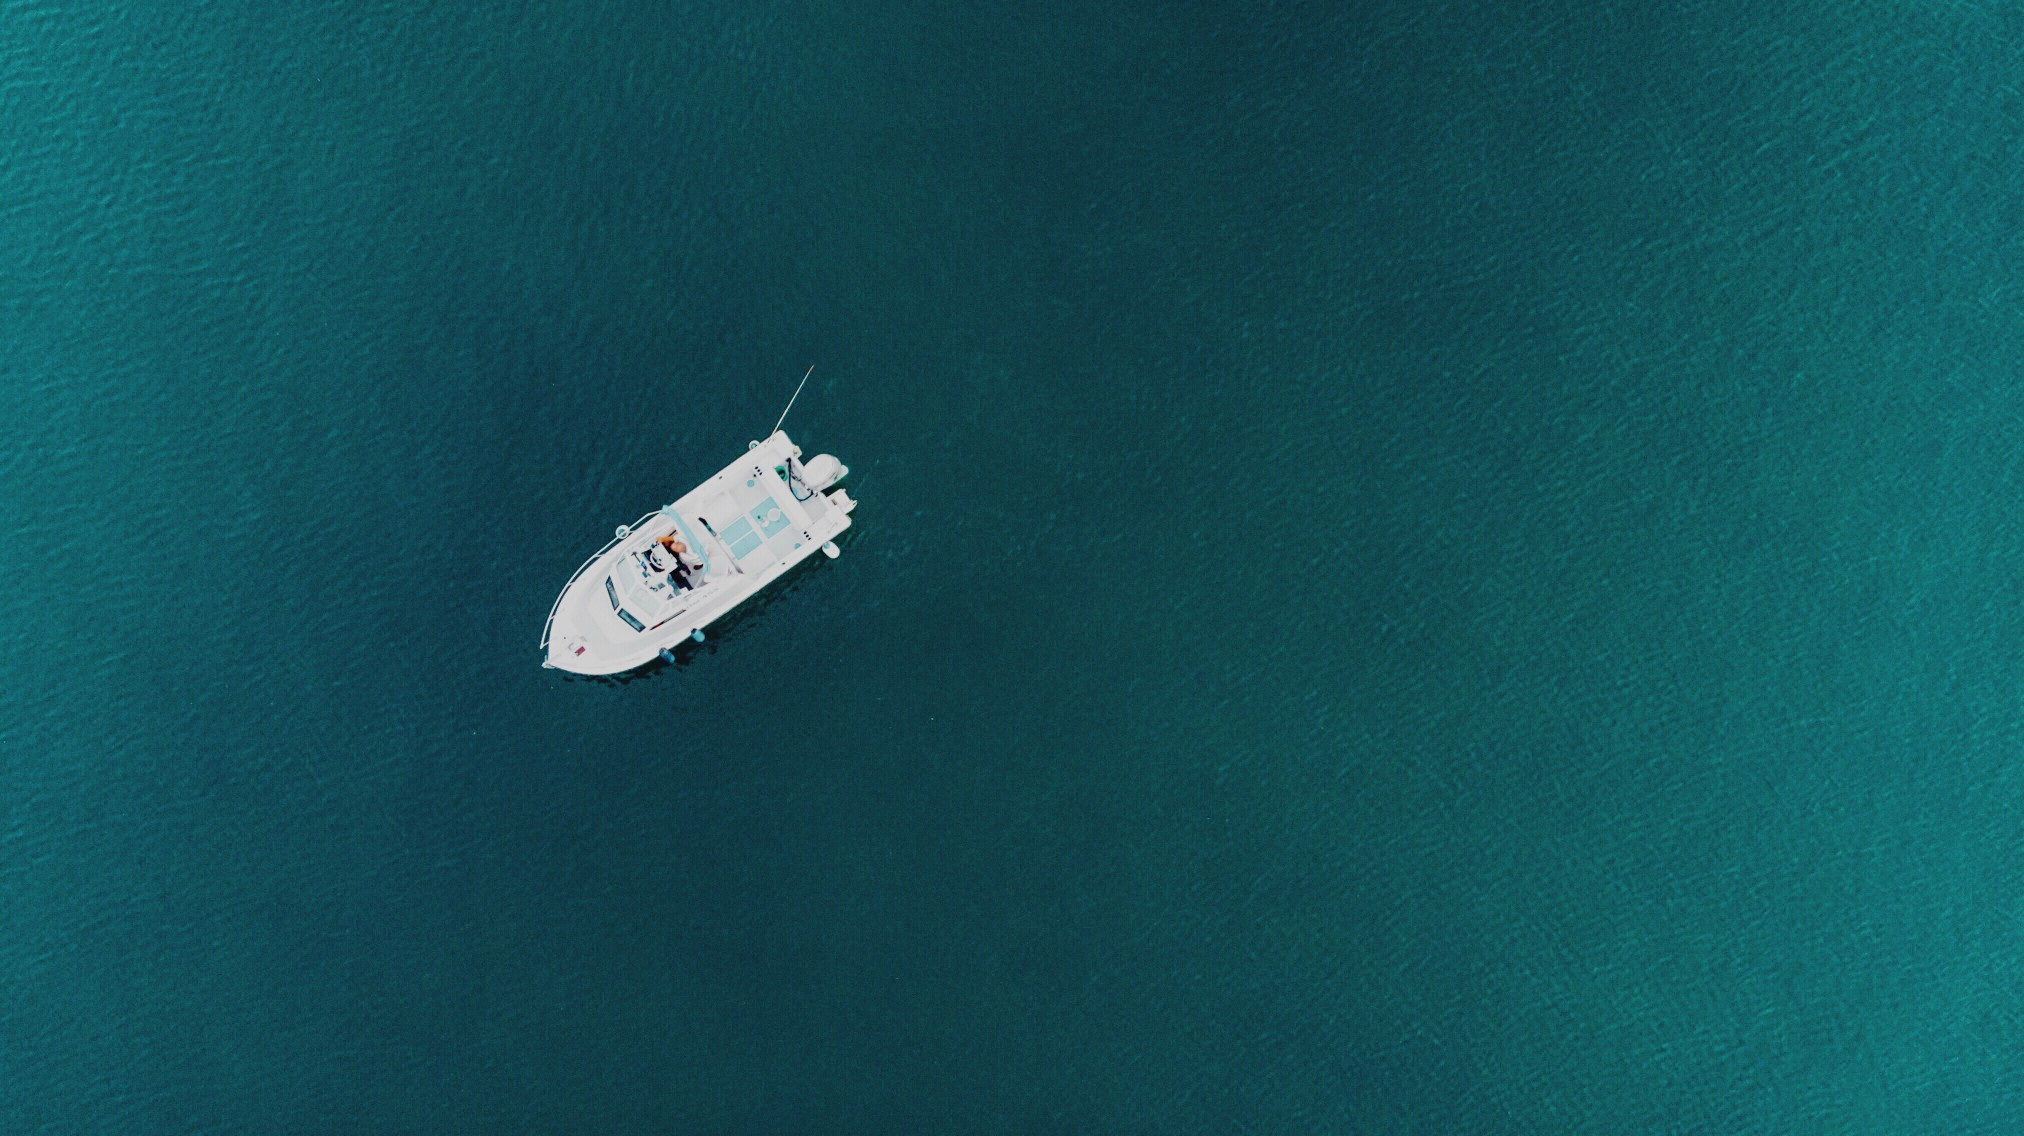 travel-boat-sea-aerial-view-blue-seascape-yacht-summer-vacations-top-view-drone-photography_t20_yw0WgL (1)